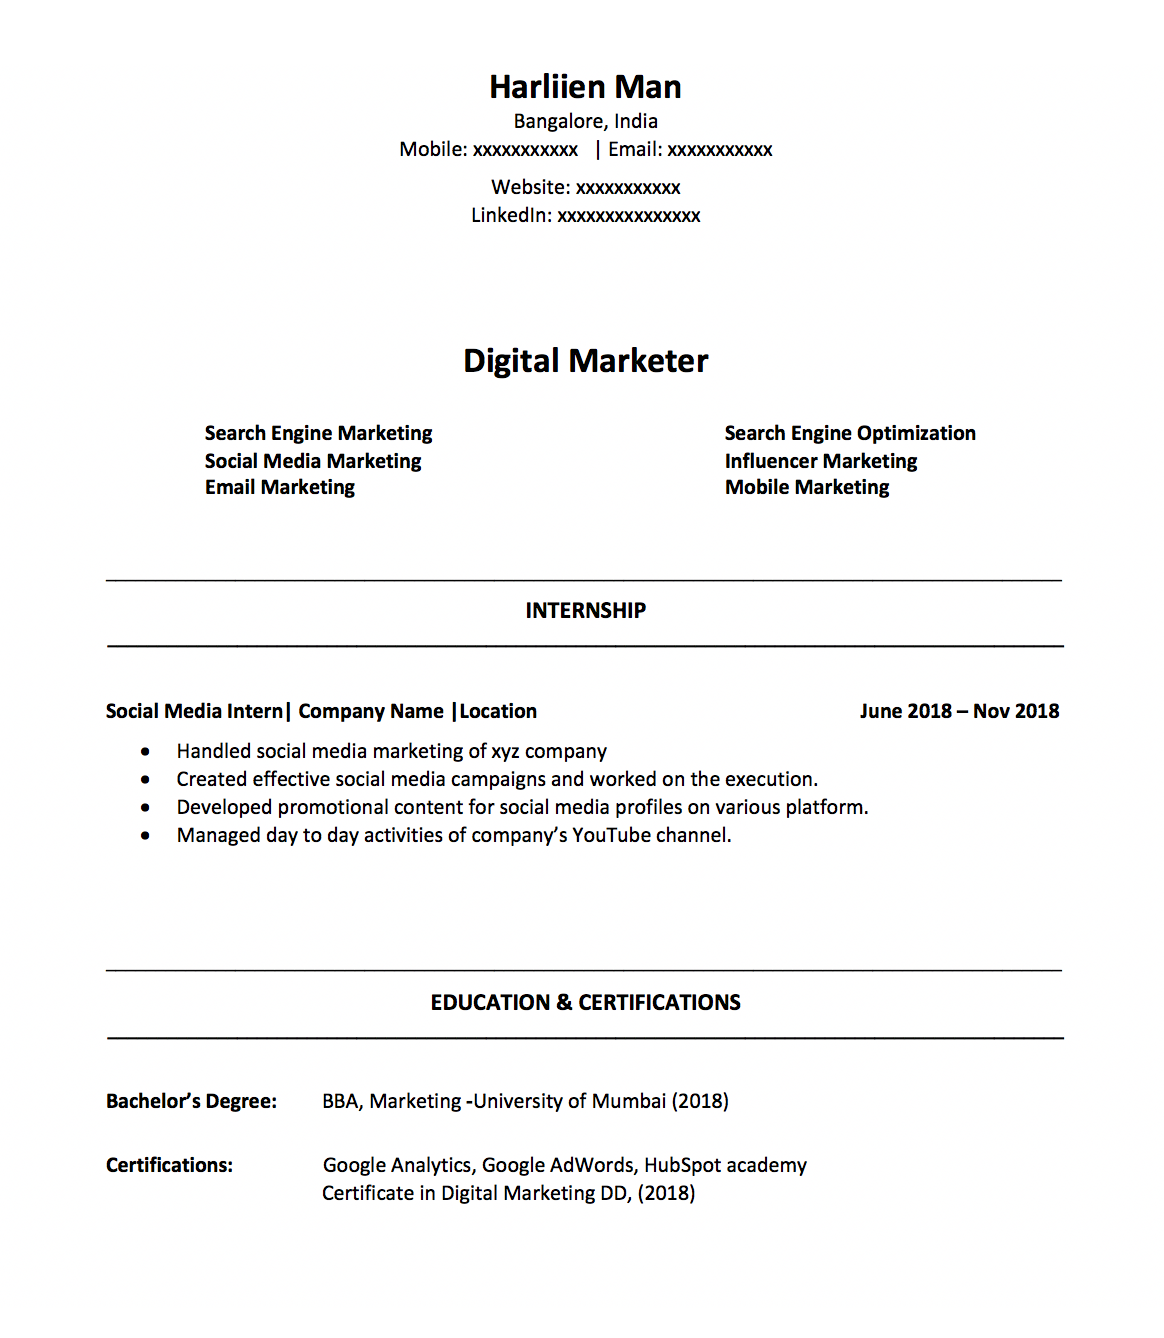 How To Make A Digital Marketing Resume As A Fresher In 2019